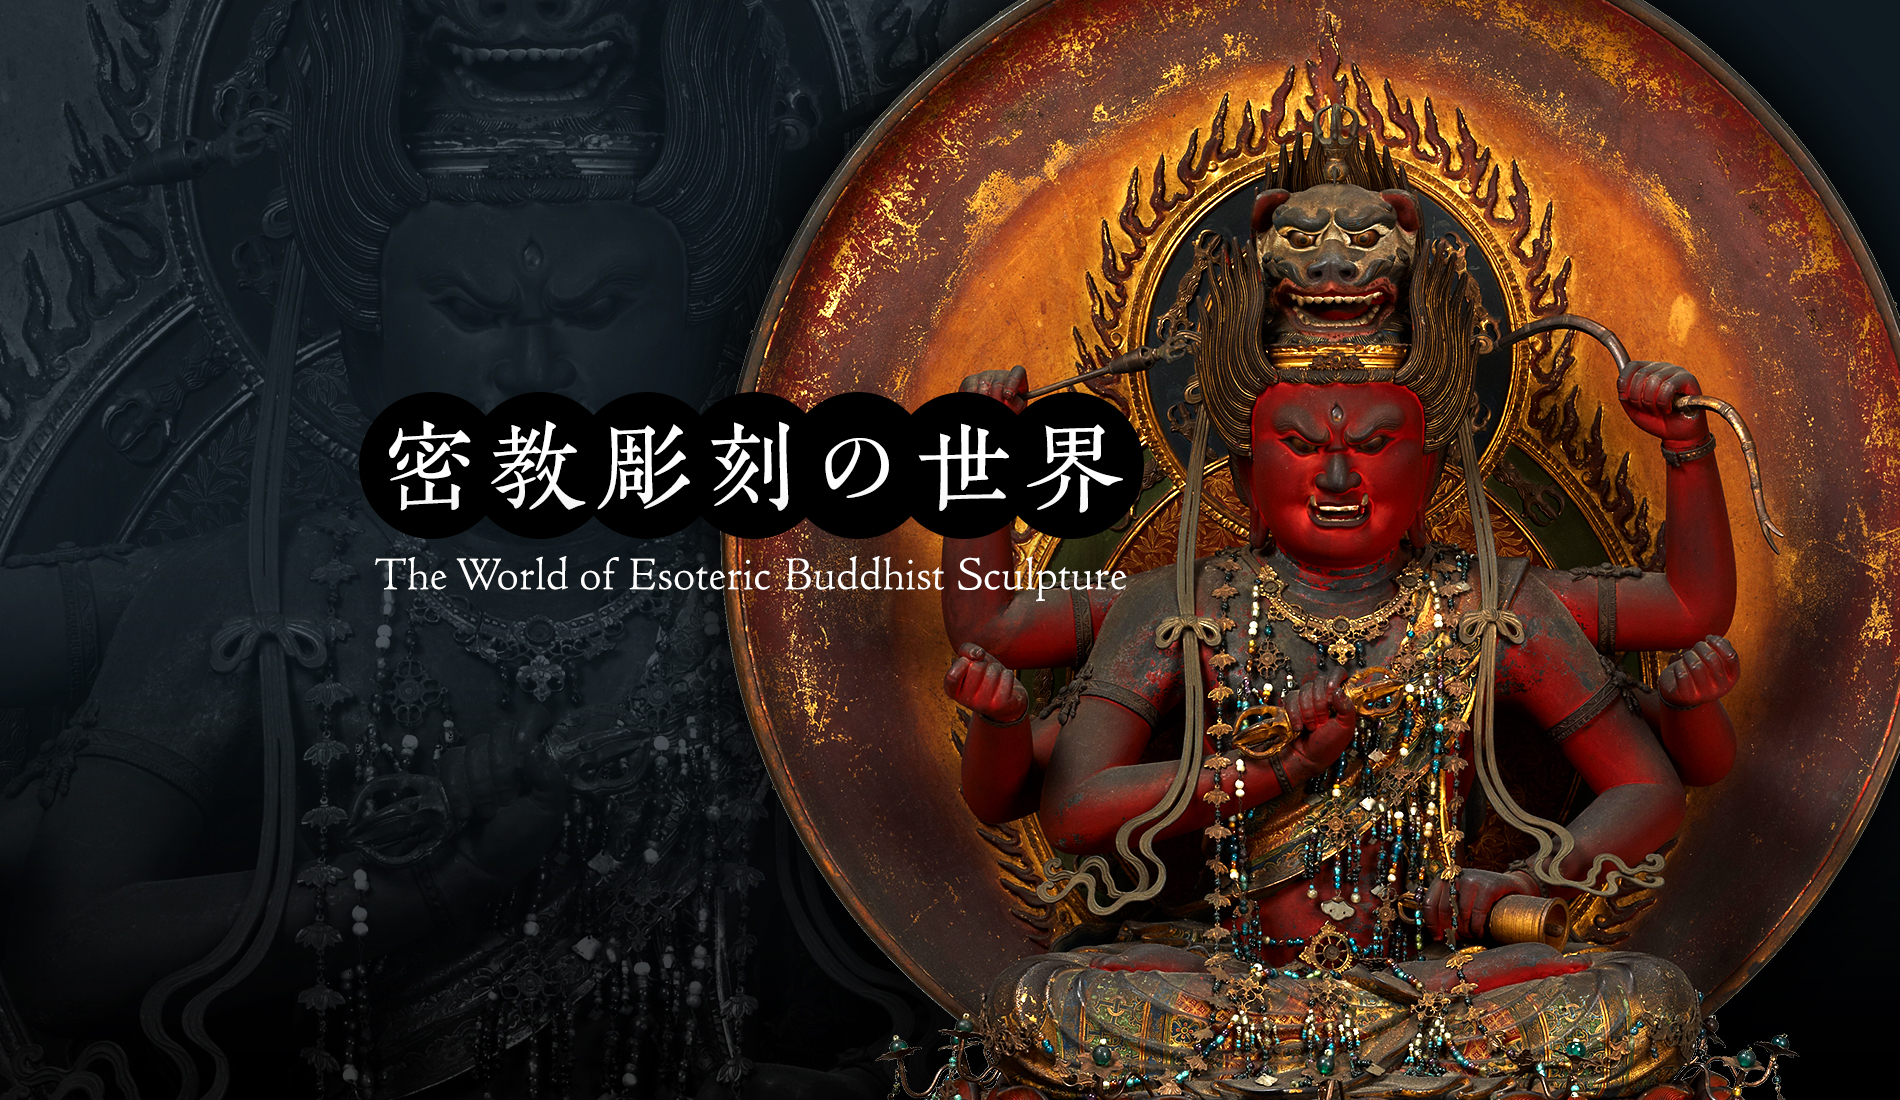 The World of Esoteric Buddhist Sculpture